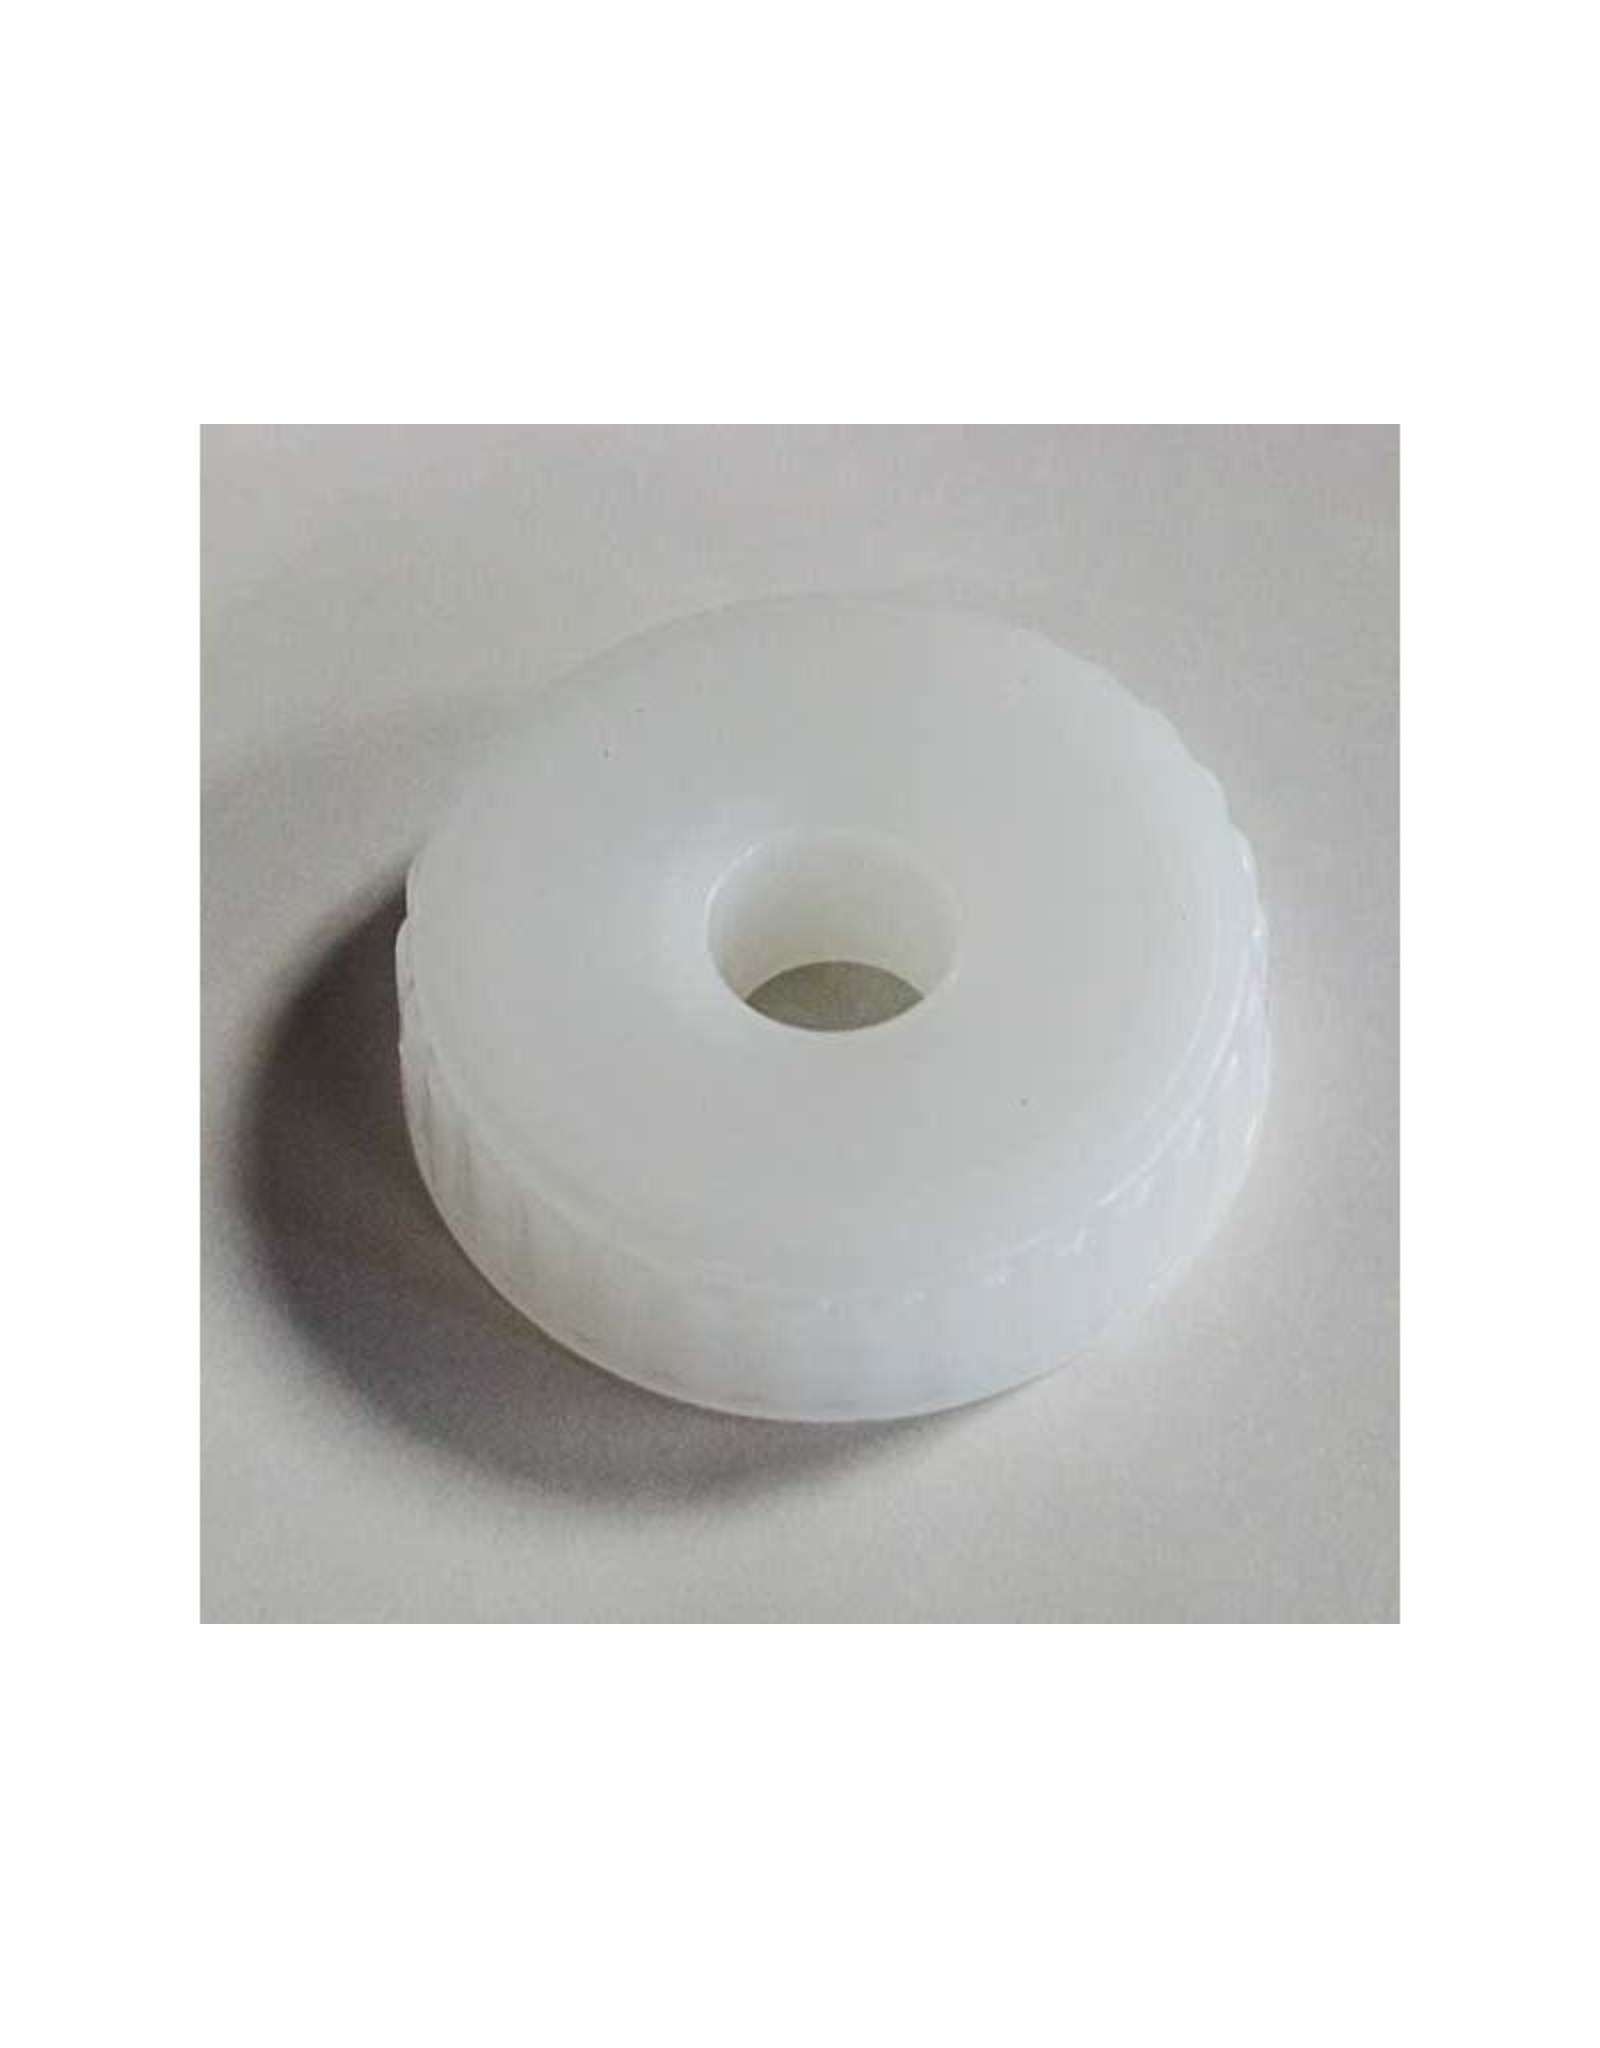 38mm Poly Screw Cap W/Hole For Gallon Jug